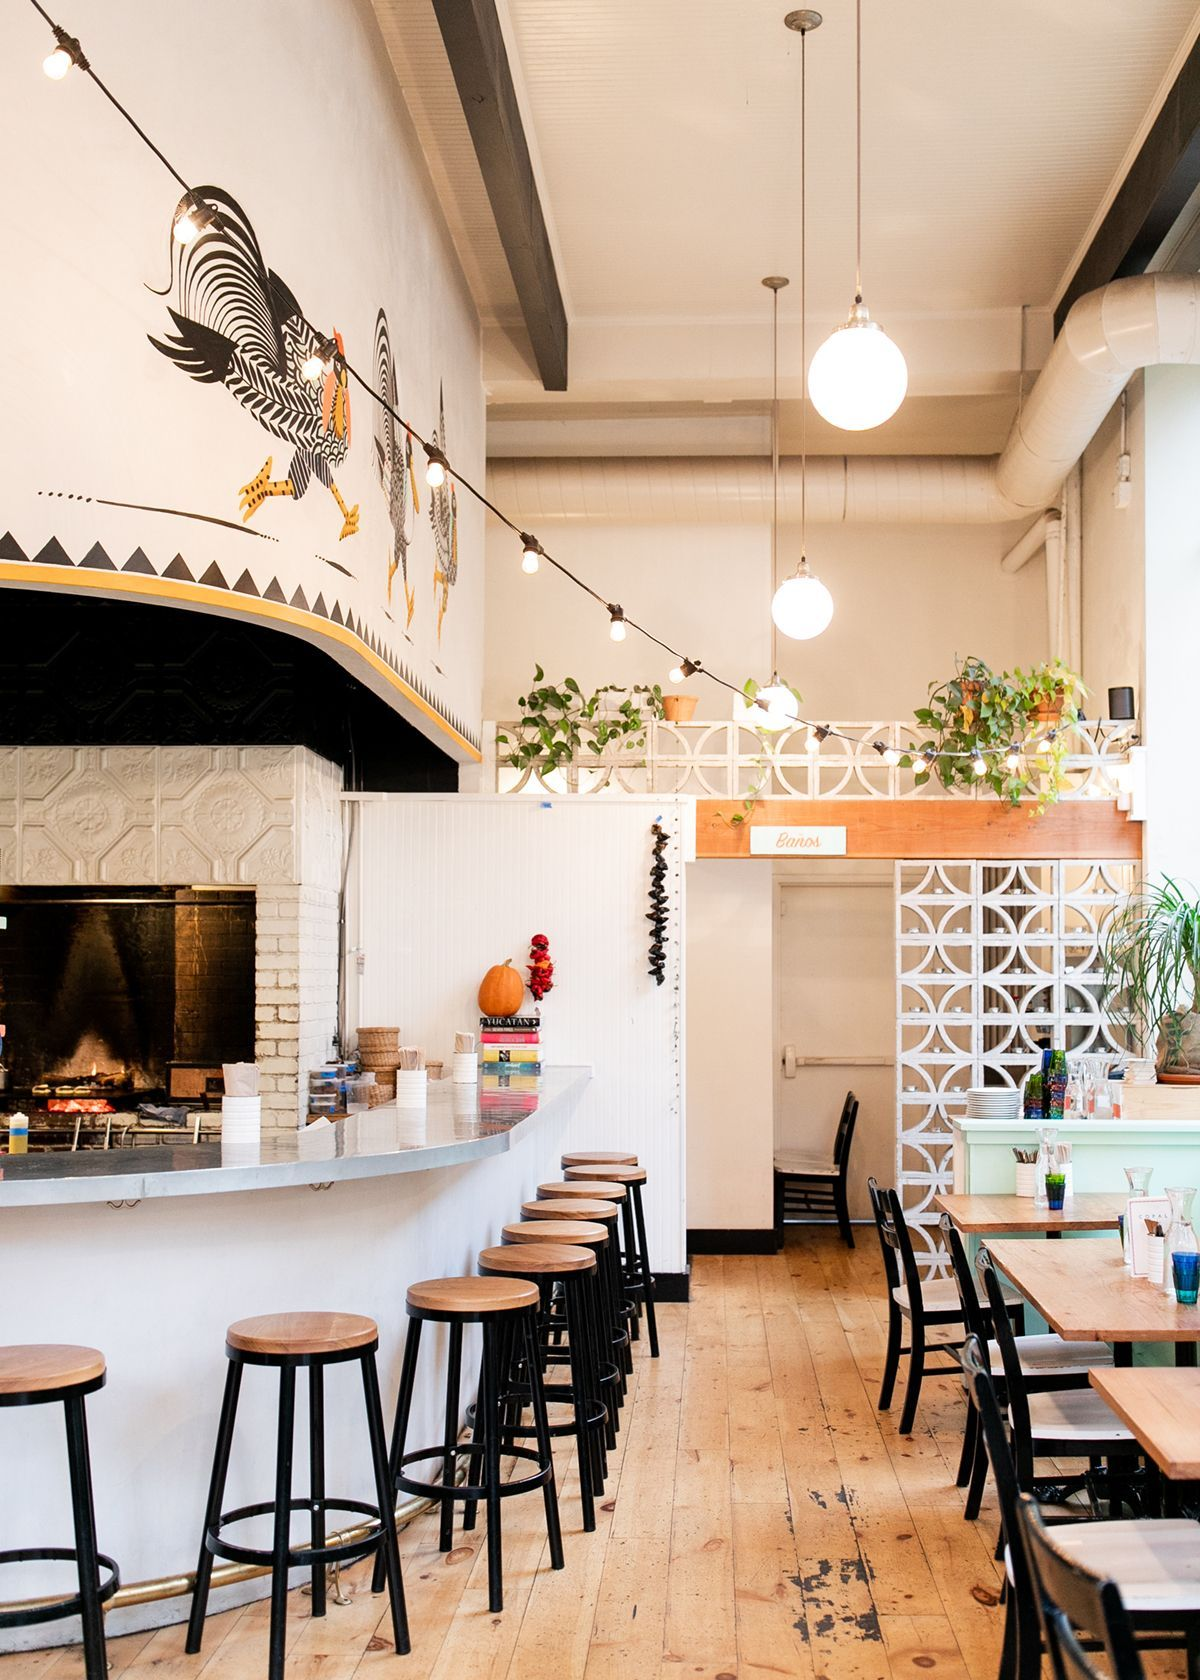 Seattle Neighborhood Guide Exploring Pioneer Square With Rothy S Coco Kelley Mexican Restaurant Decor Mexican Restaurant Design Restaurant Decor